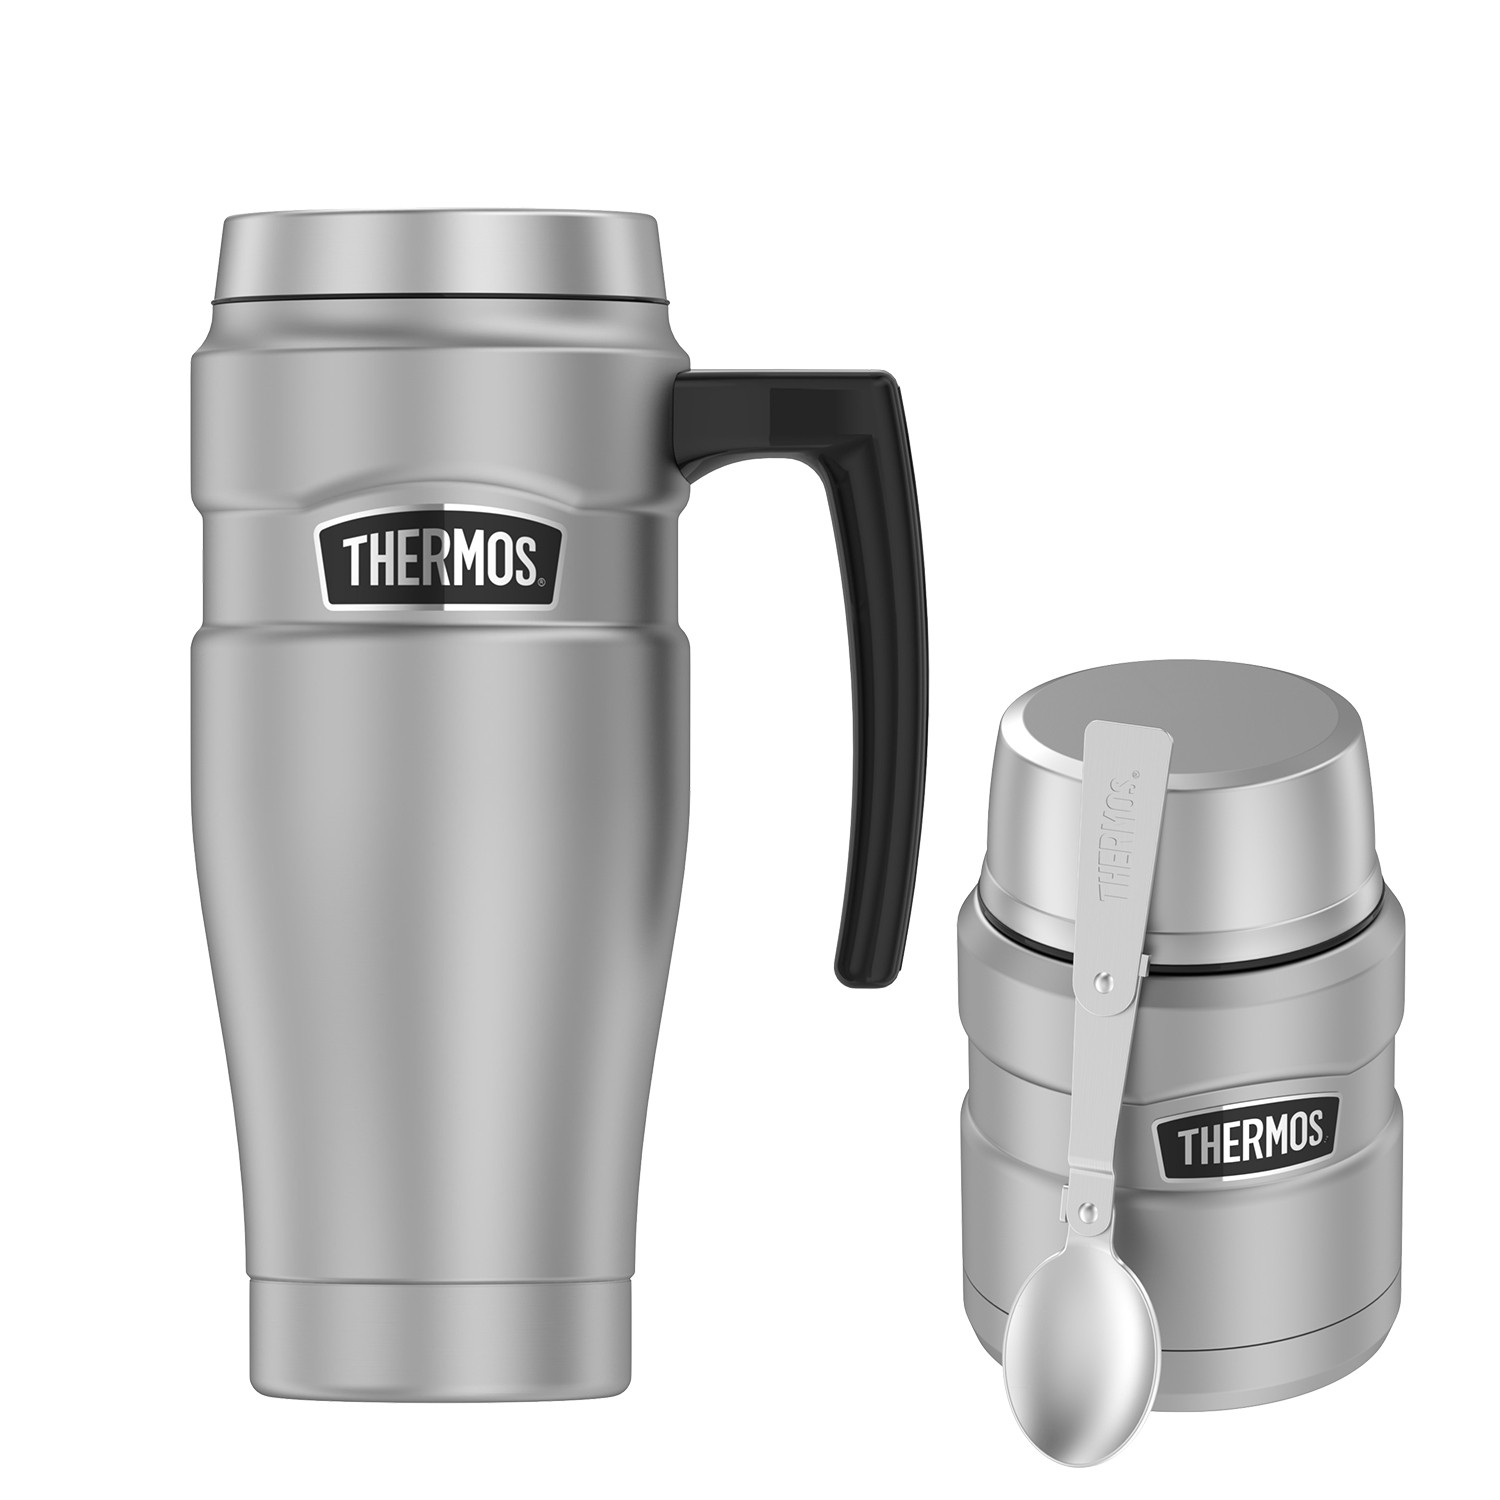 STAINLESS KING 16OZ STAINLESS STEEL TRAVEL MUG AND FOOD JAR